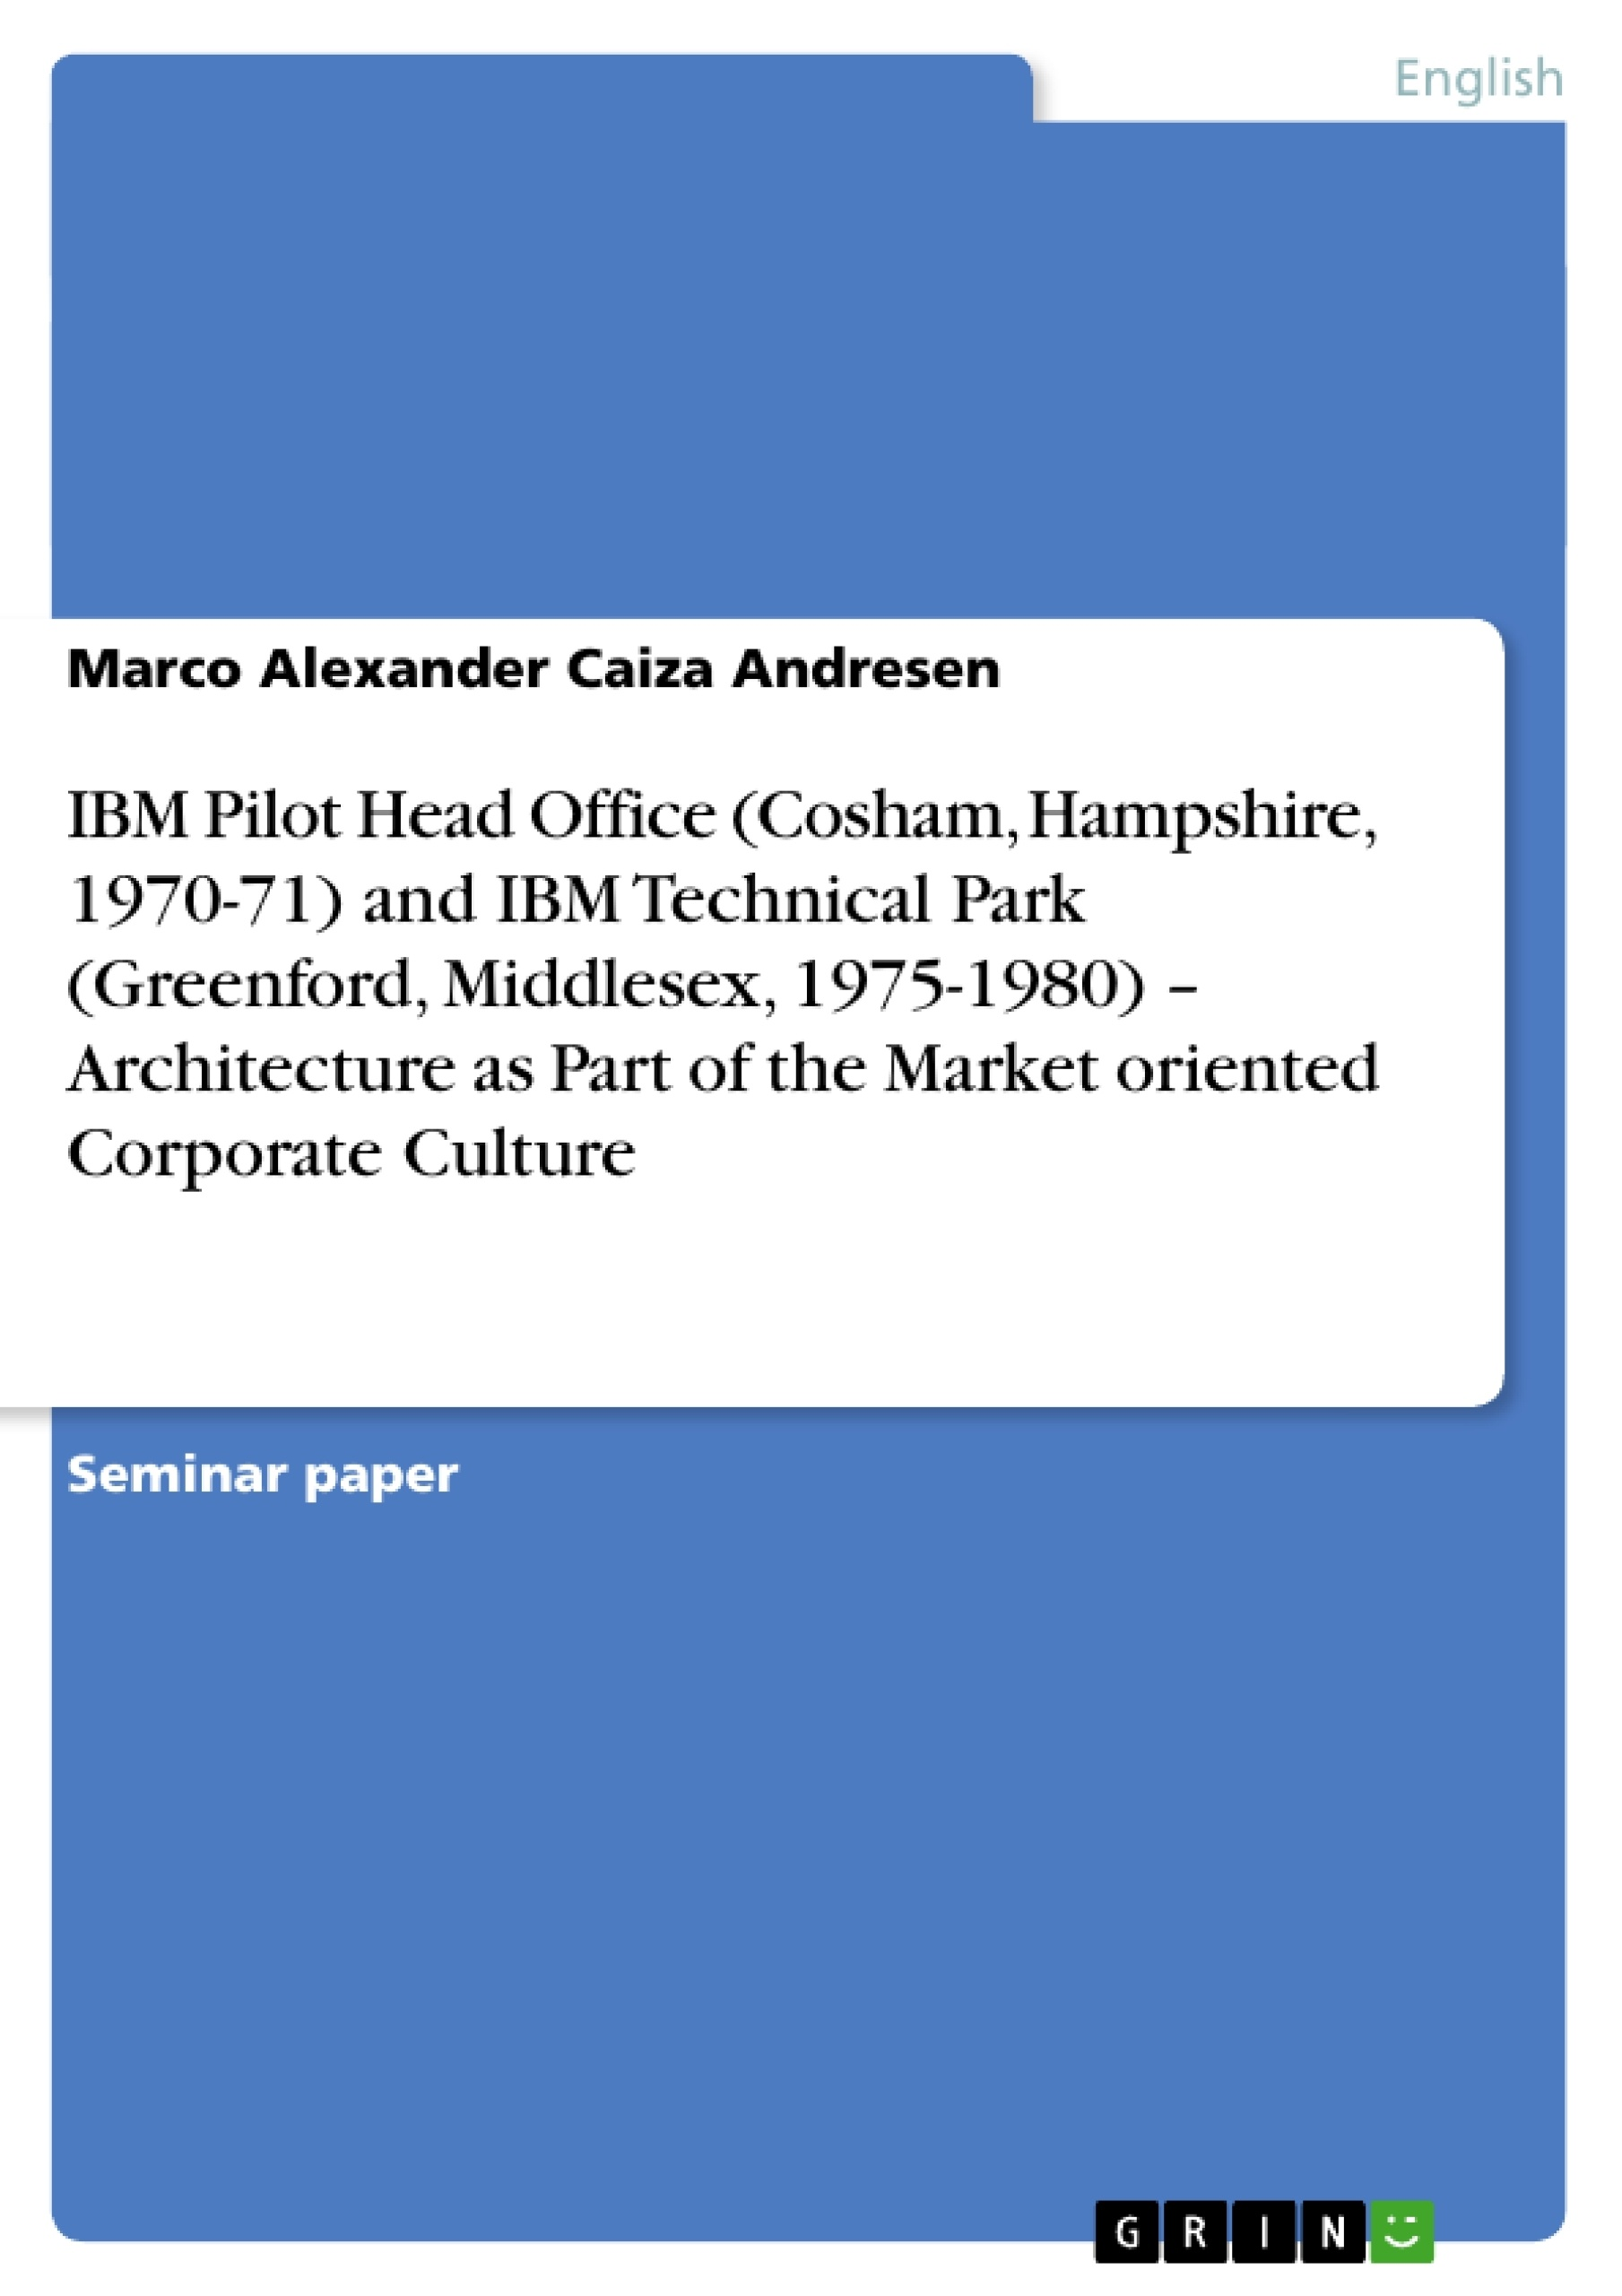 Title: IBM Pilot Head Office (Cosham, Hampshire, 1970-71) and IBM Technical Park (Greenford, Middlesex, 1975-1980) – Architecture as Part of the Market oriented Corporate Culture